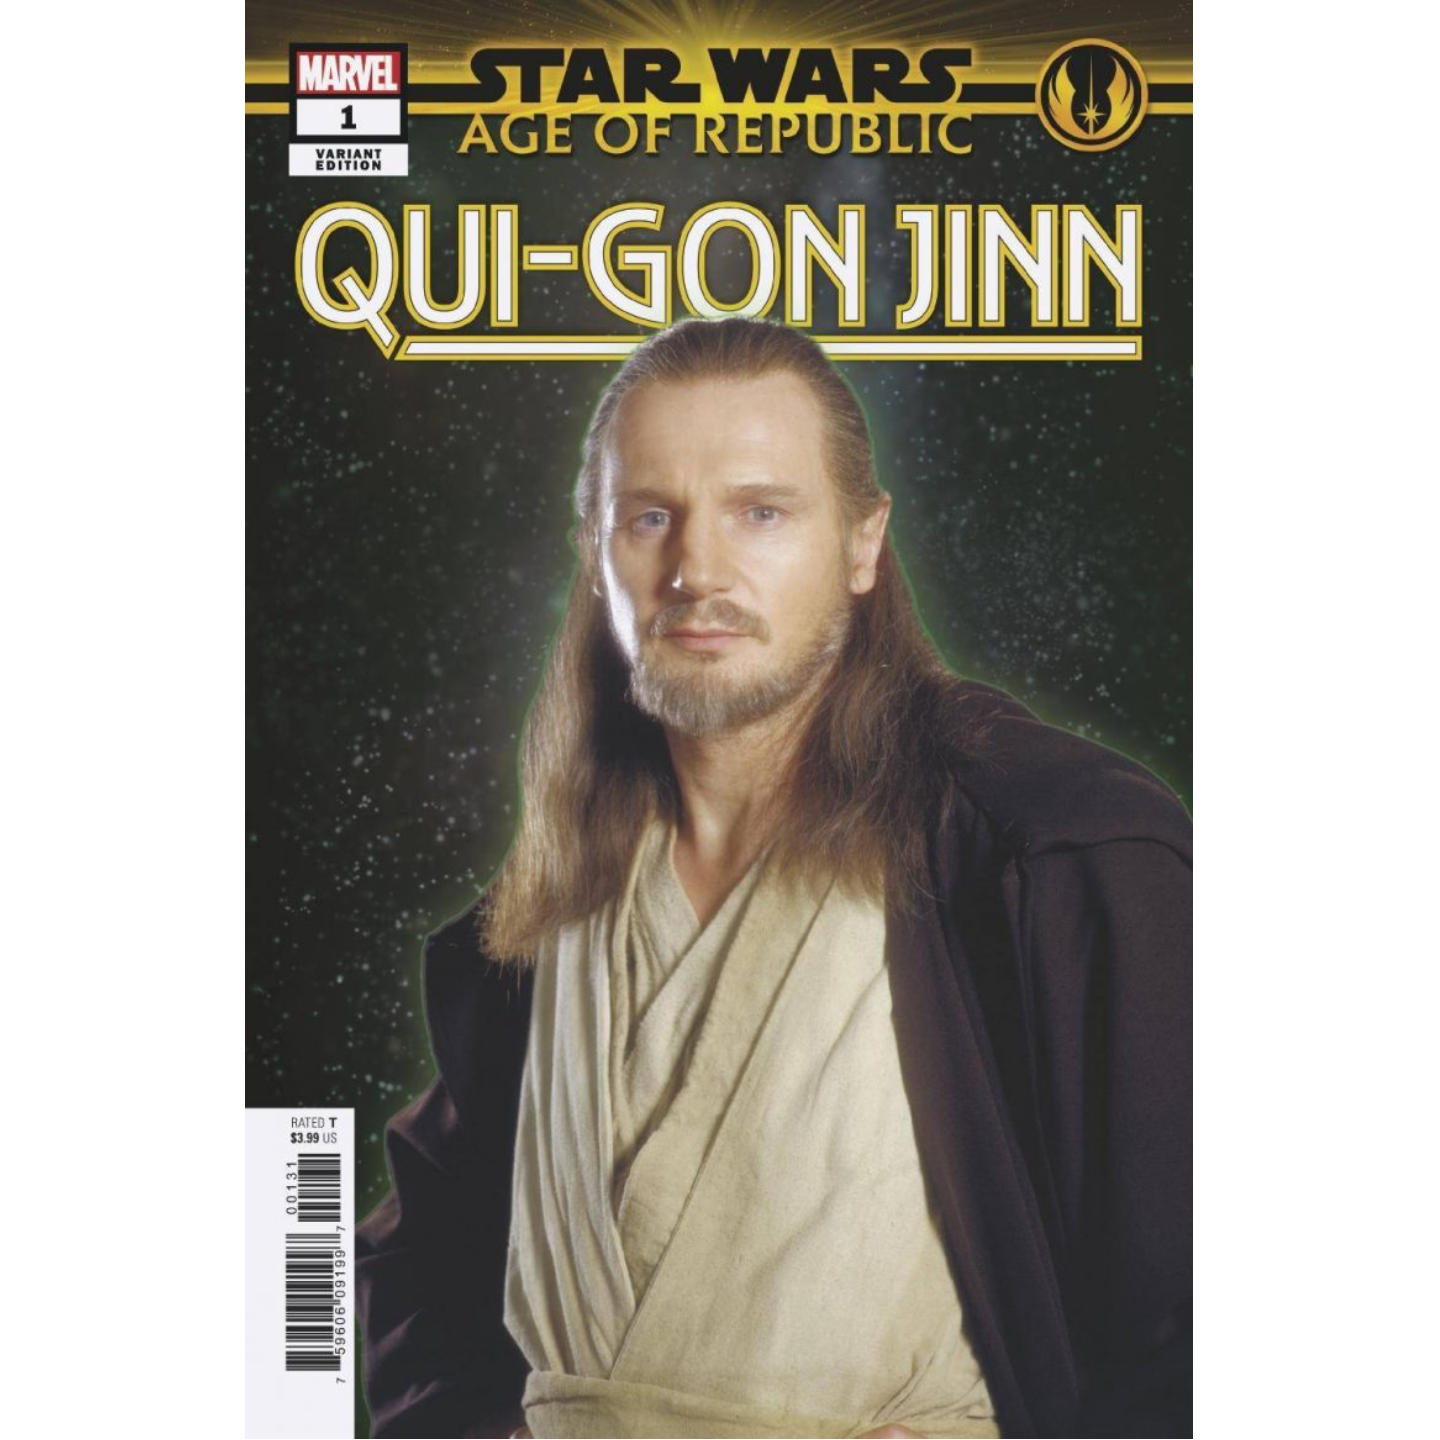 STAR WARS: AGE OF REPUBLIC - QUI-GON JINN - MOVIE VAR